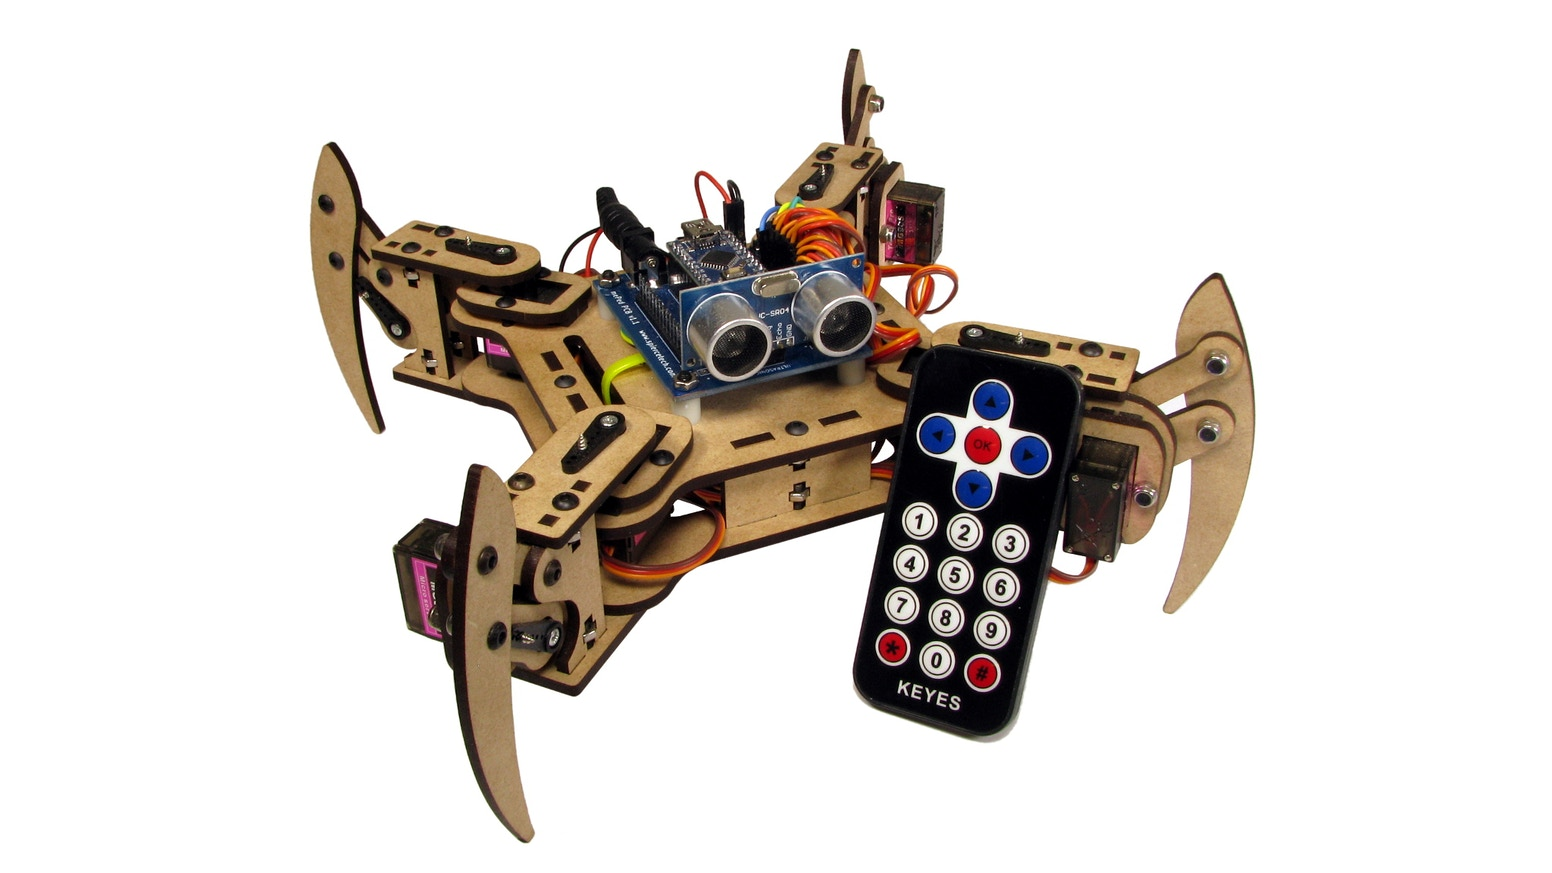 Build your own four legged friend with this easy robot kit!  What will you teach your mePed to do?